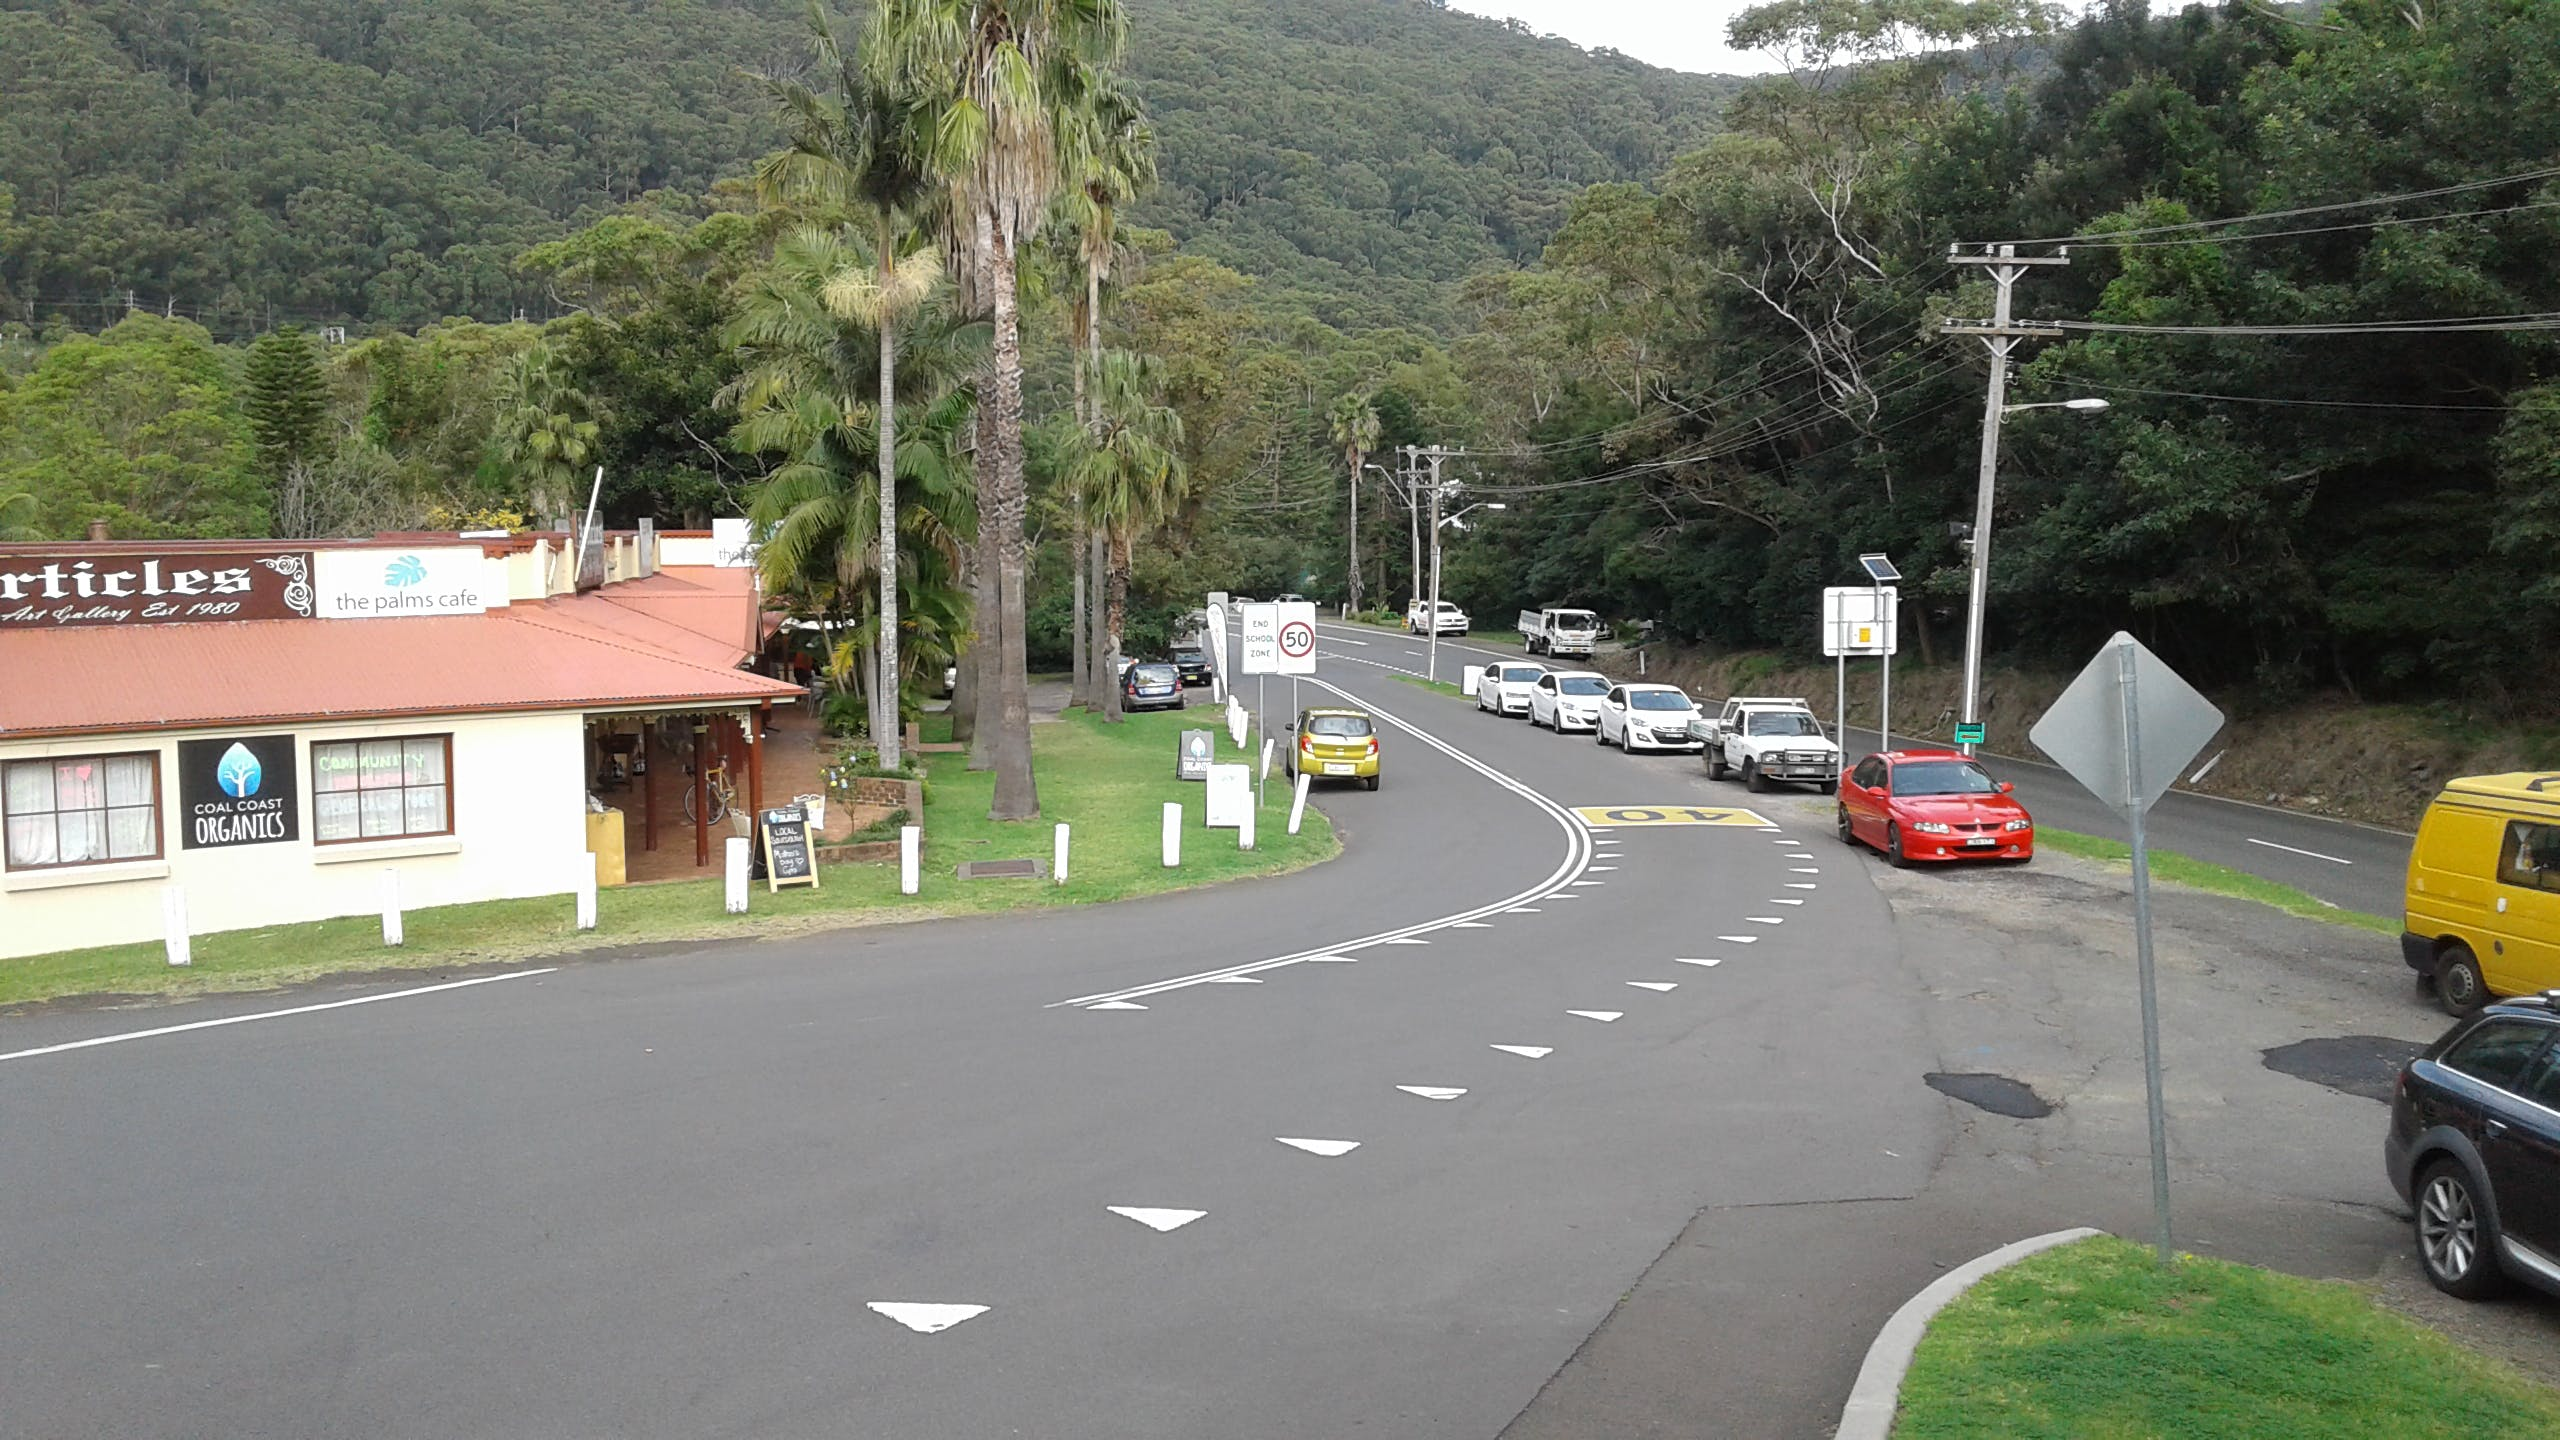 Road and streetscape at Stanwell Park that will be upgraded with new paving, tree planting, parking bays and other pedestrian access and safety improvements.